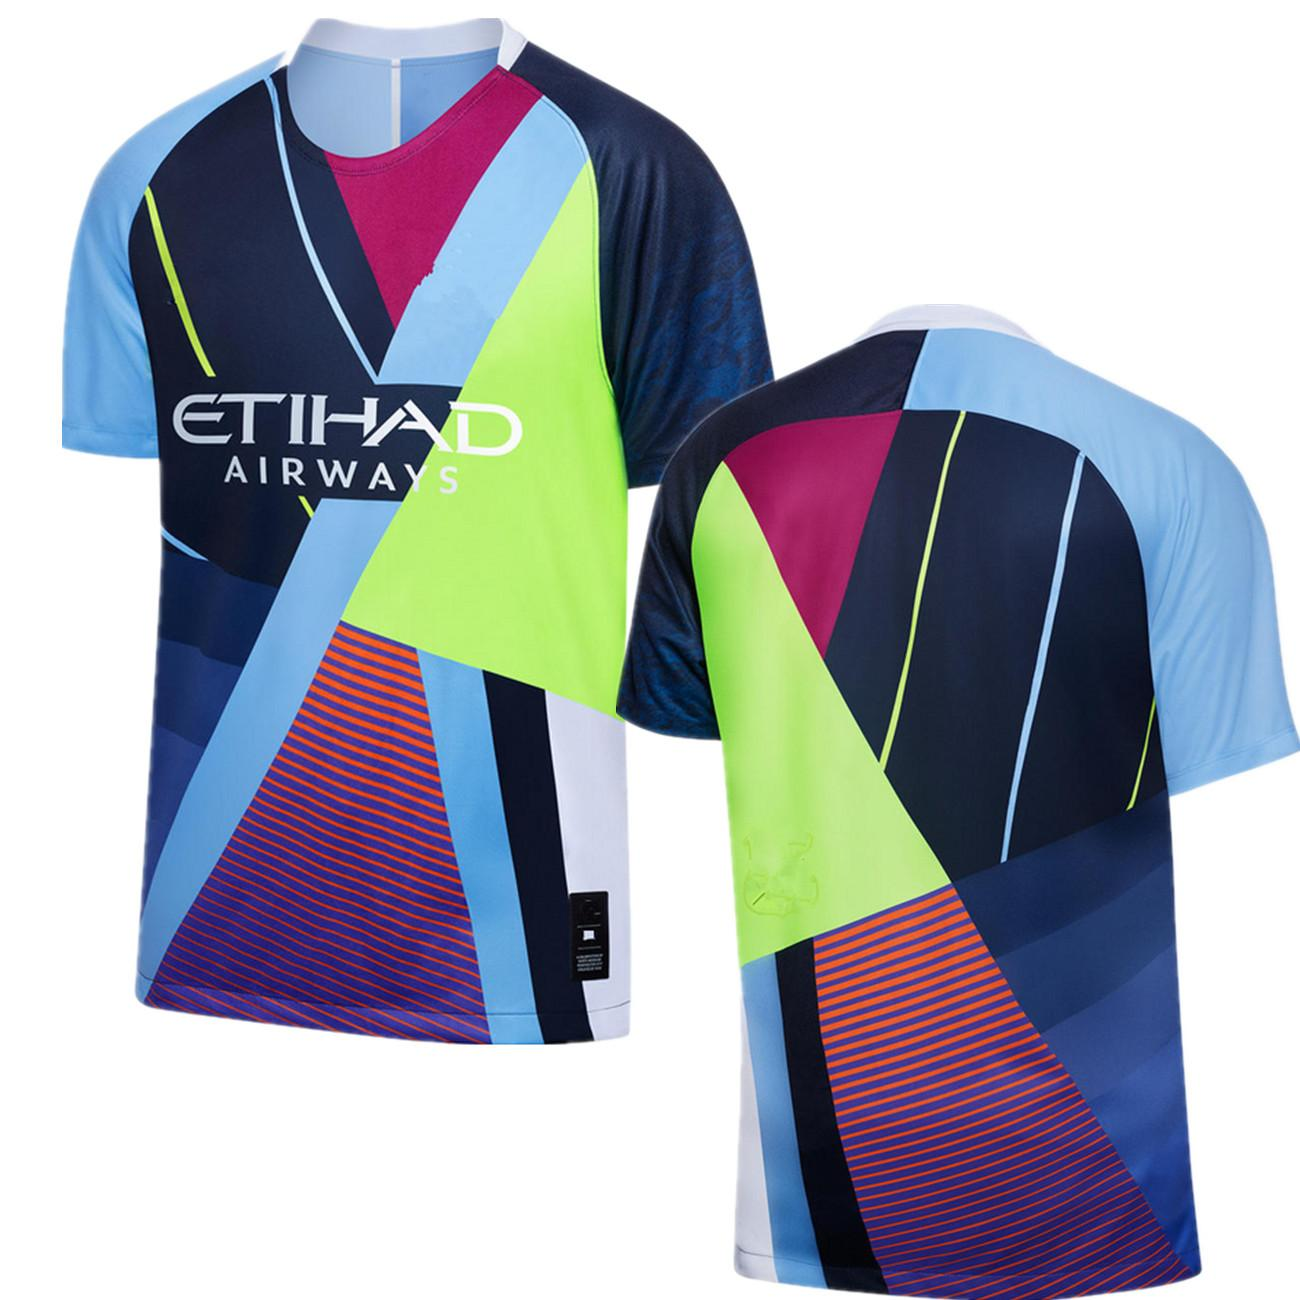 Nuove Maglie Manchester City 2019